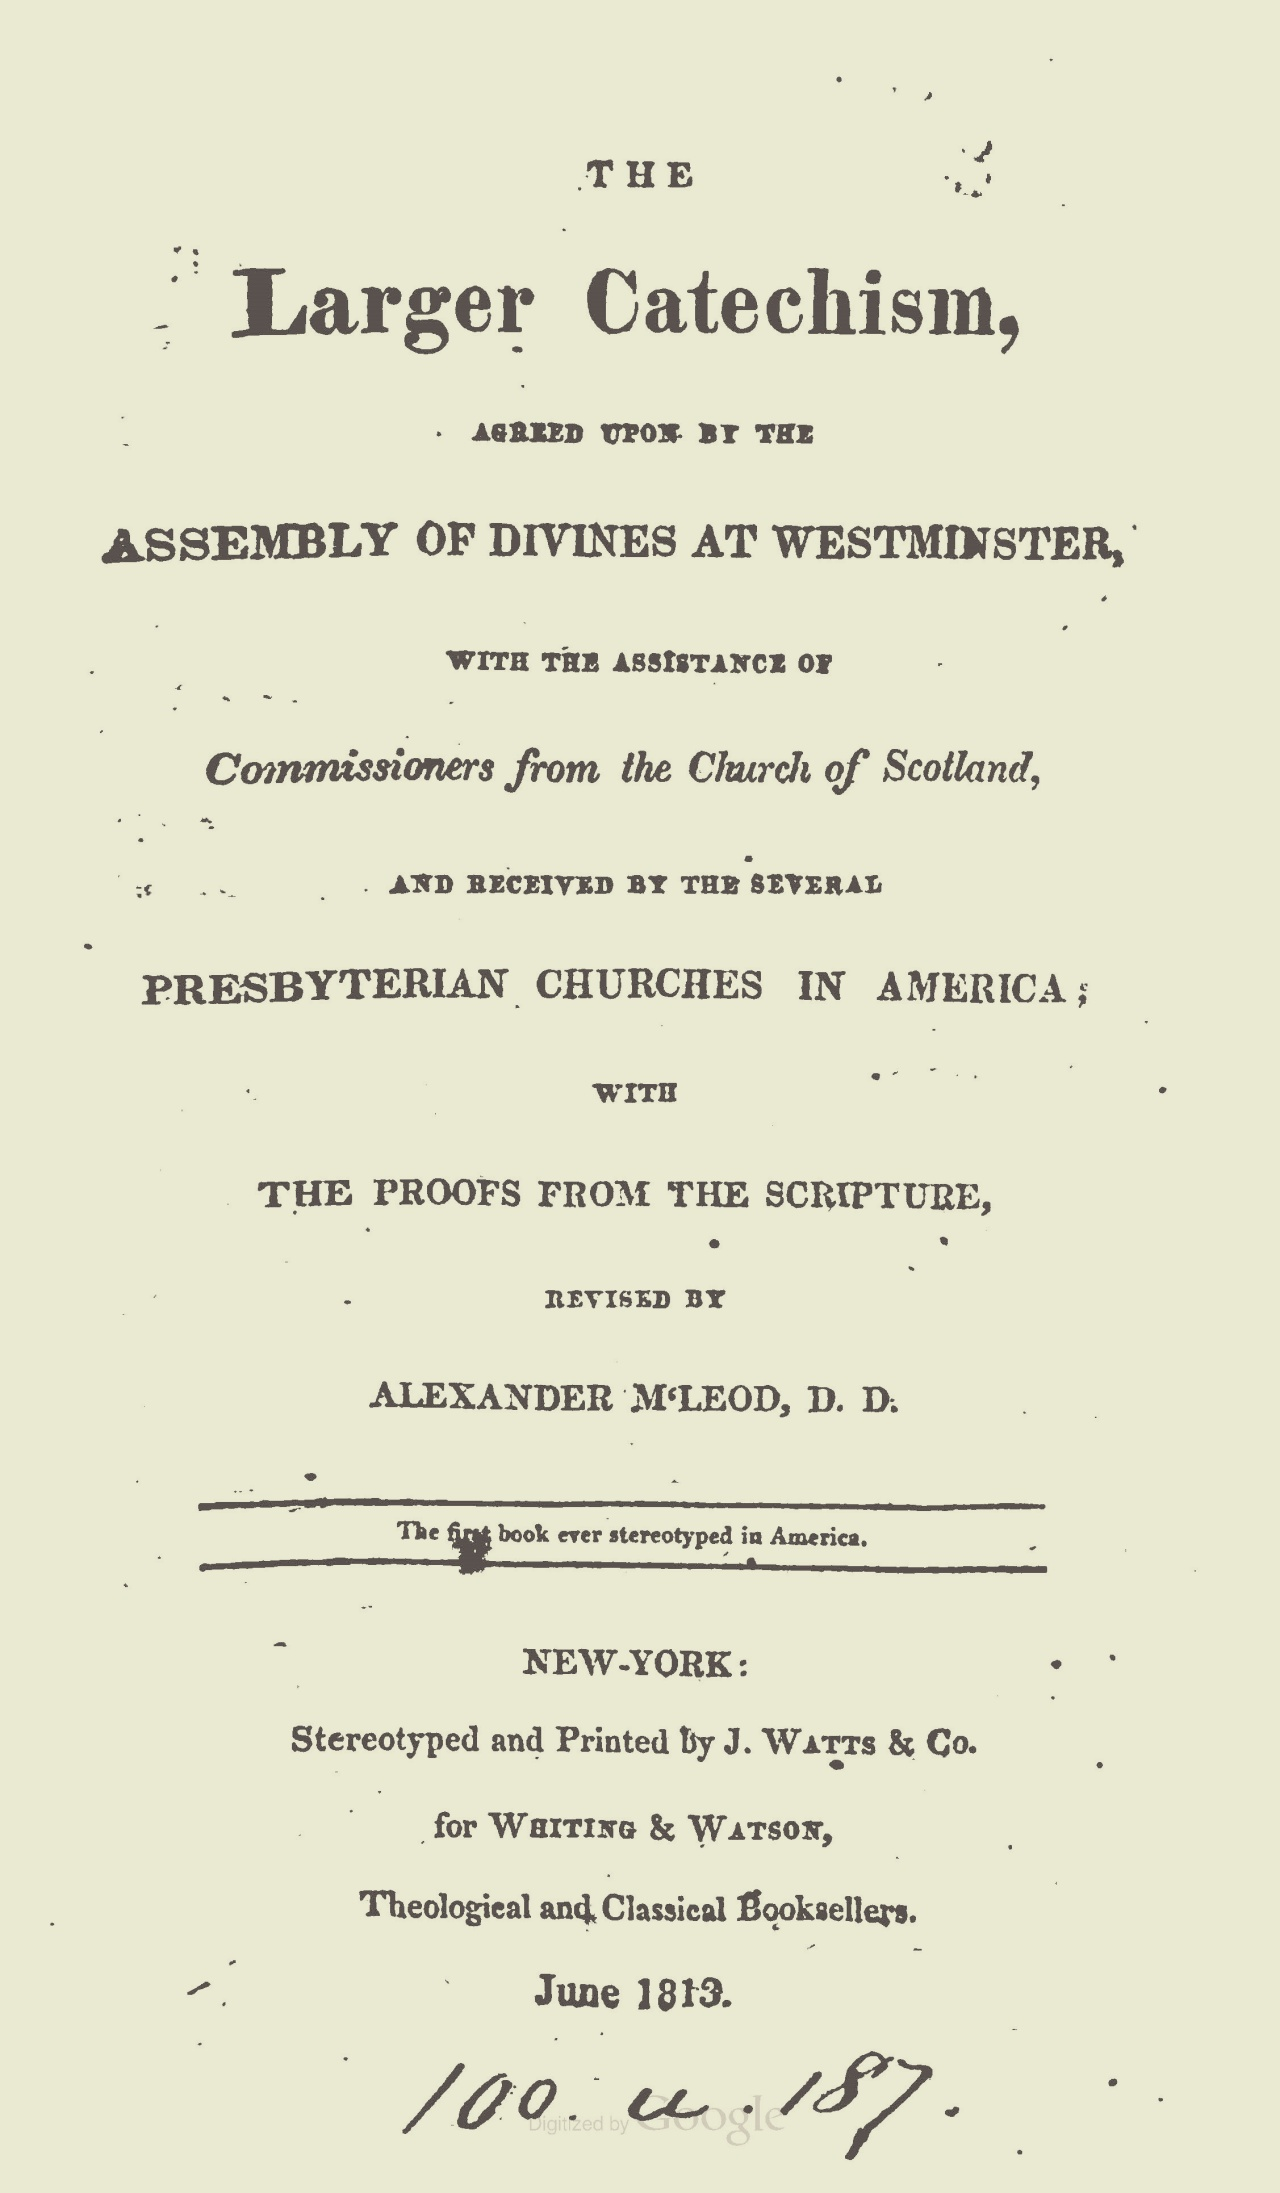 The first book published in stereotype in America.